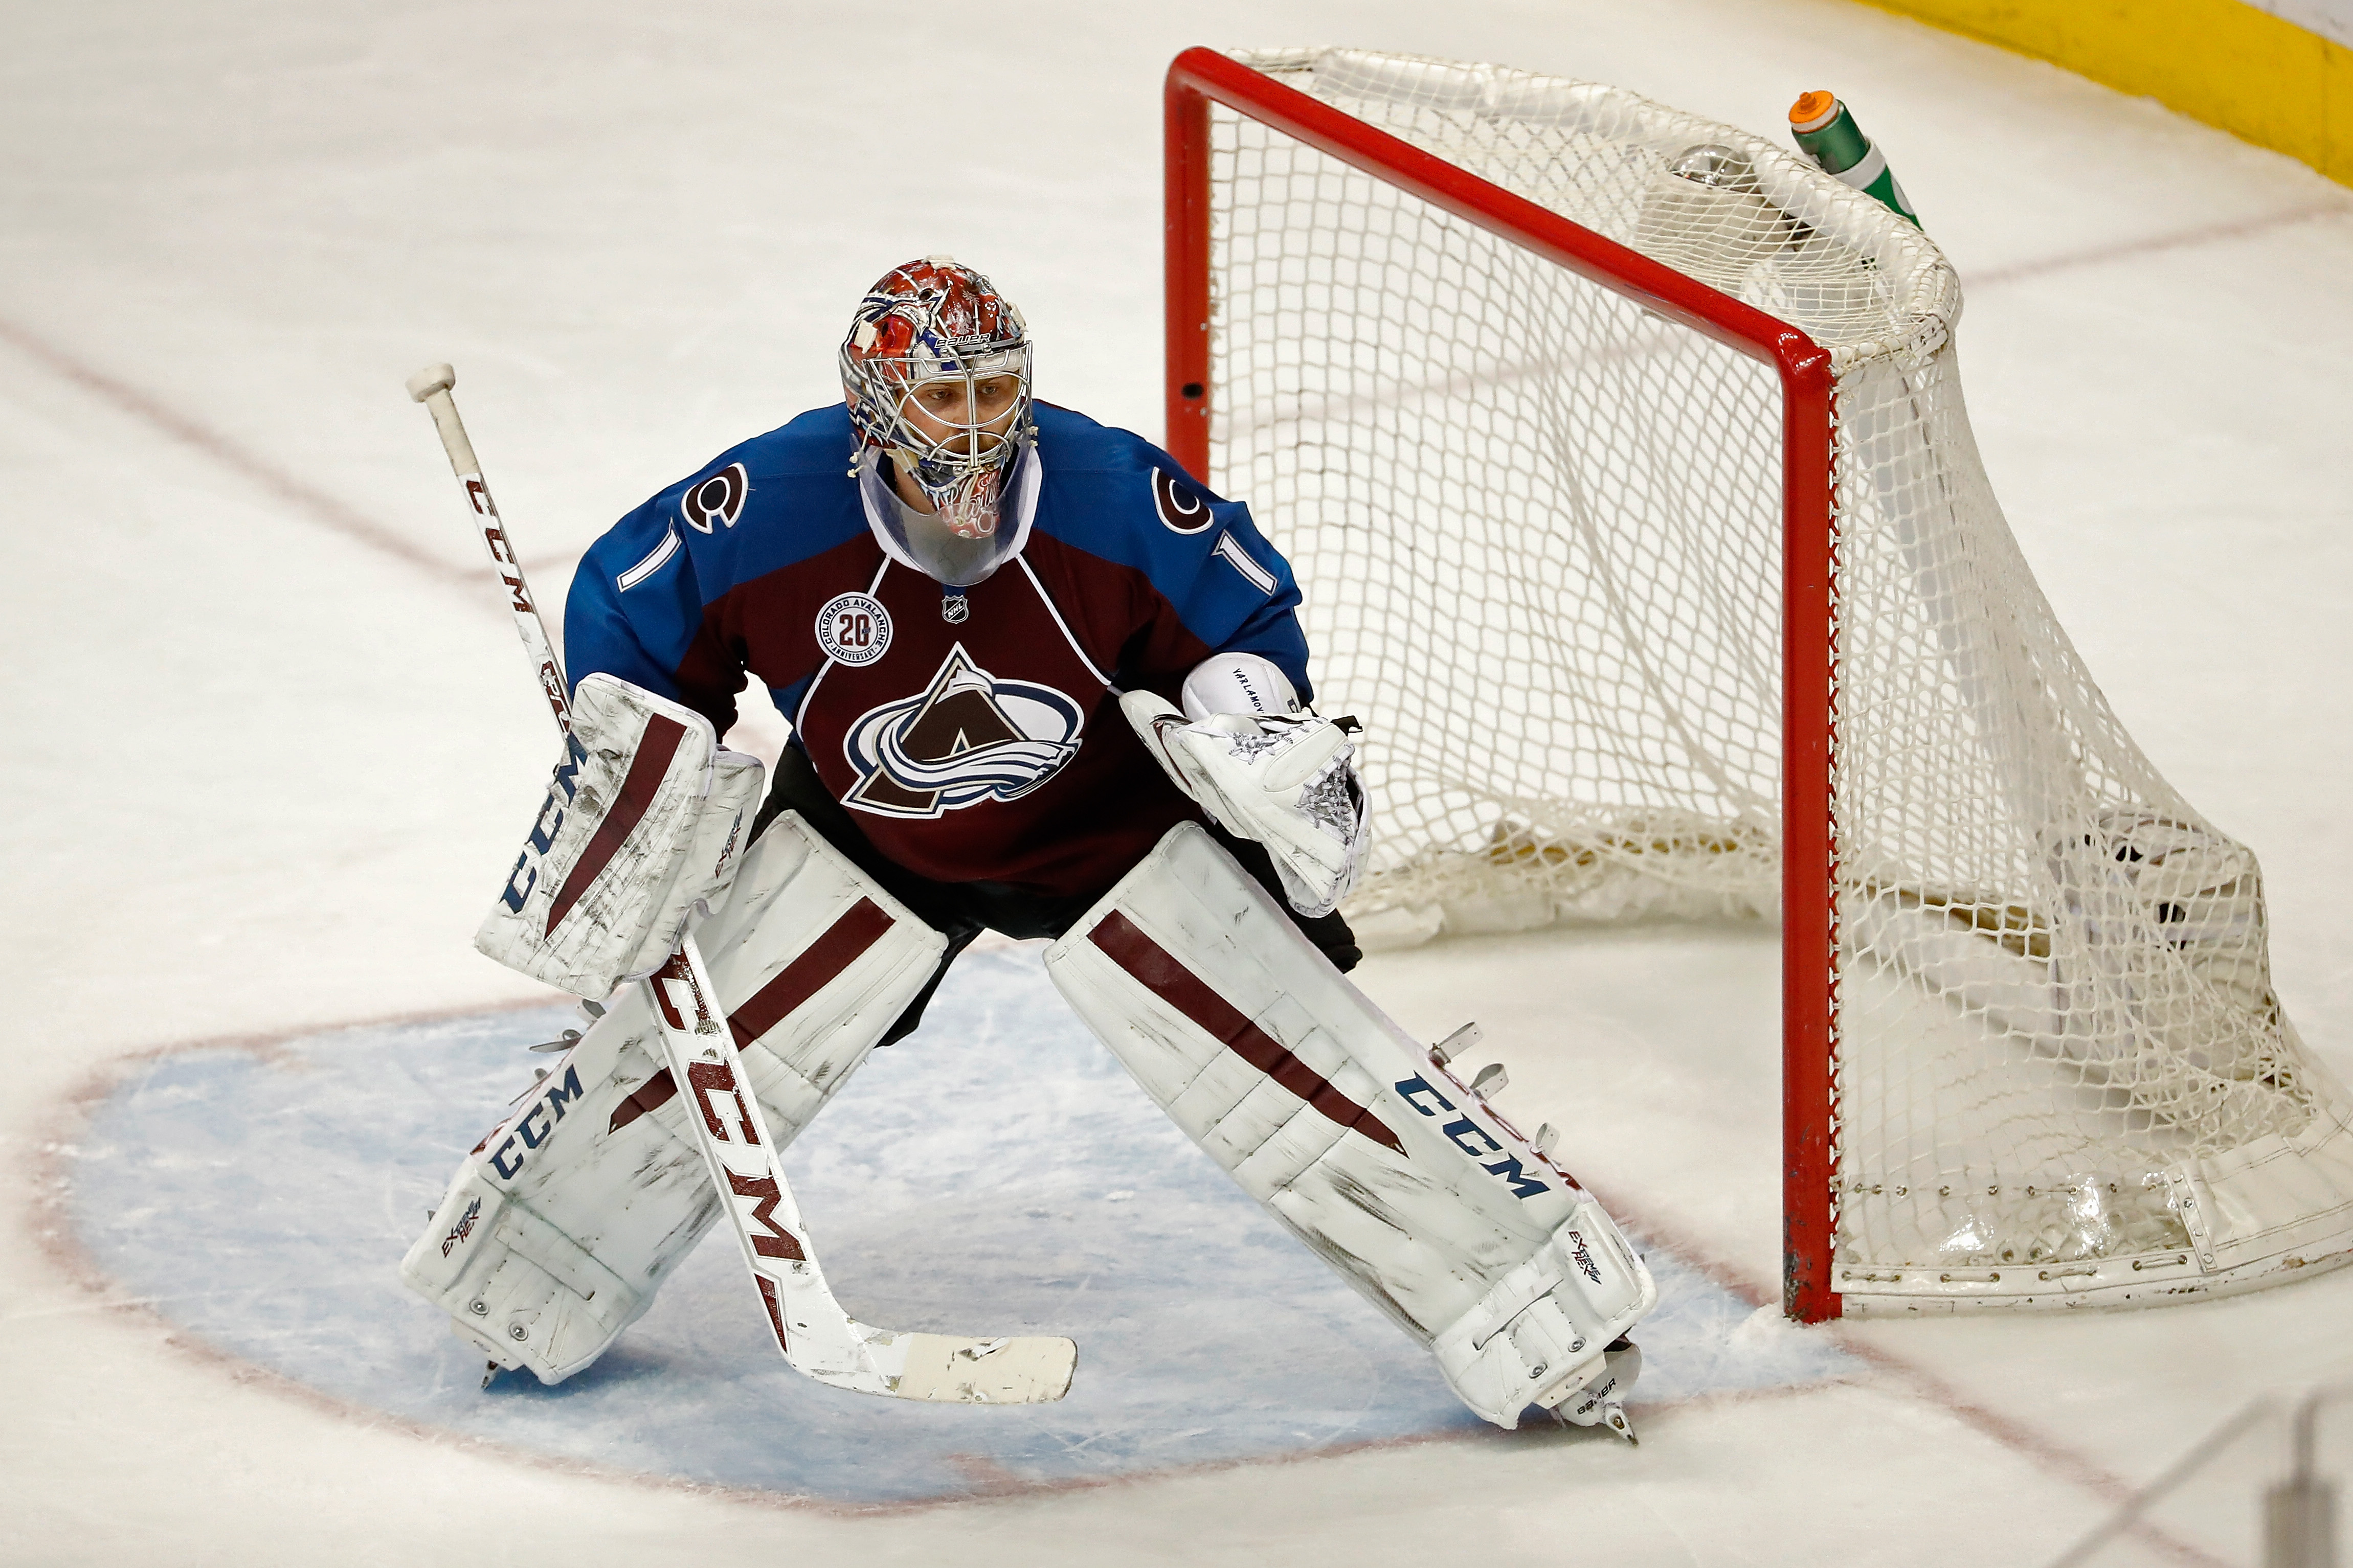 Goalie Semyon Varlamov #1 of the Colorado Avalanche defends the goal against the Anaheim Ducks at Pepsi Center on March 9, 2016 in Denver, Colorado. The Avalanche defeated the Ducks 3-0. (Photo by Doug Pensinger/Getty Images)